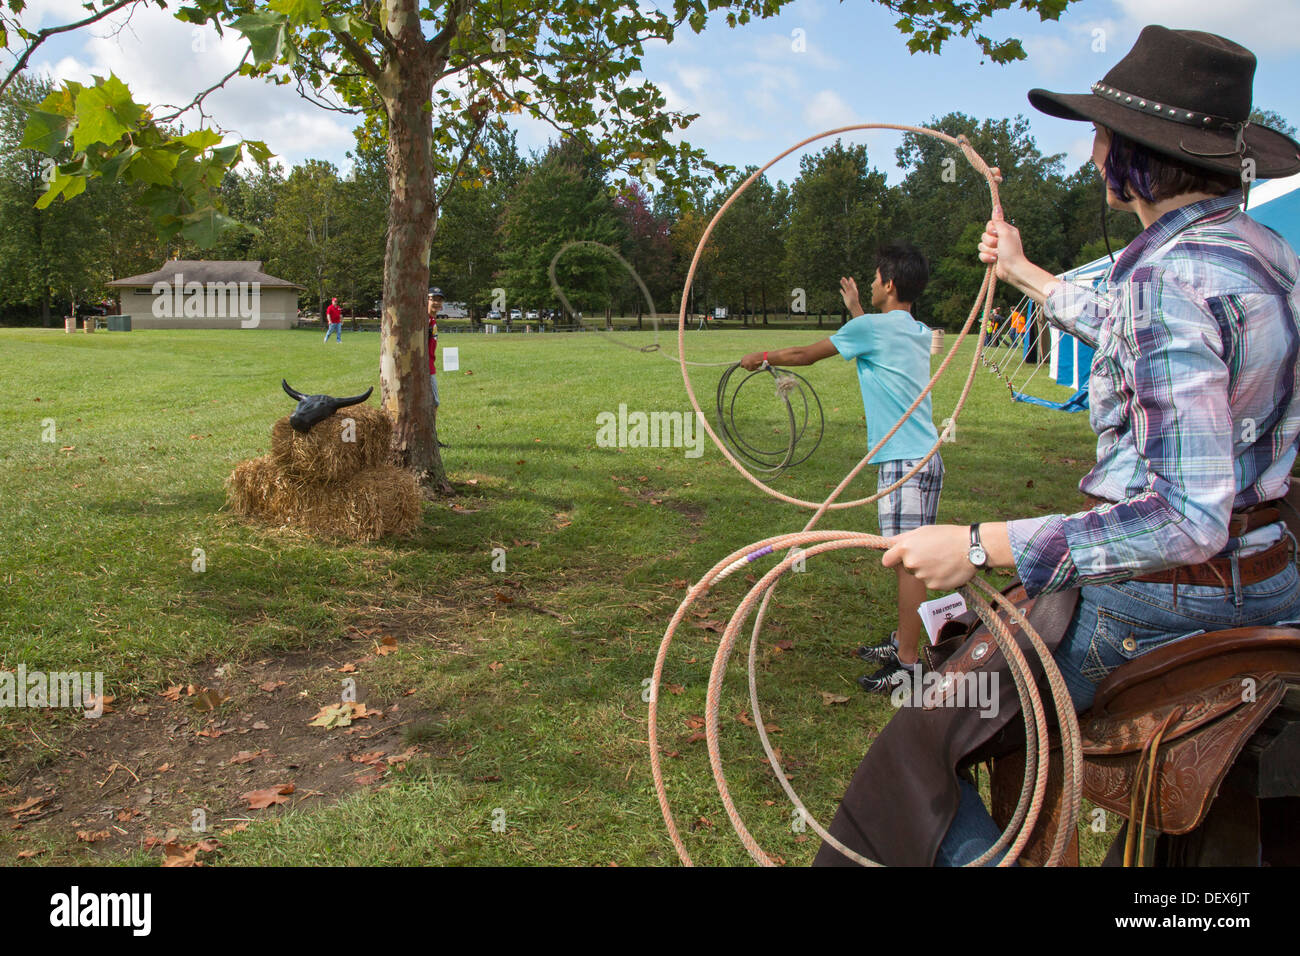 A Boy Scout tries to lasso the horns of a bull during a Scout gathering in a suburban Detroit park. - Stock Image